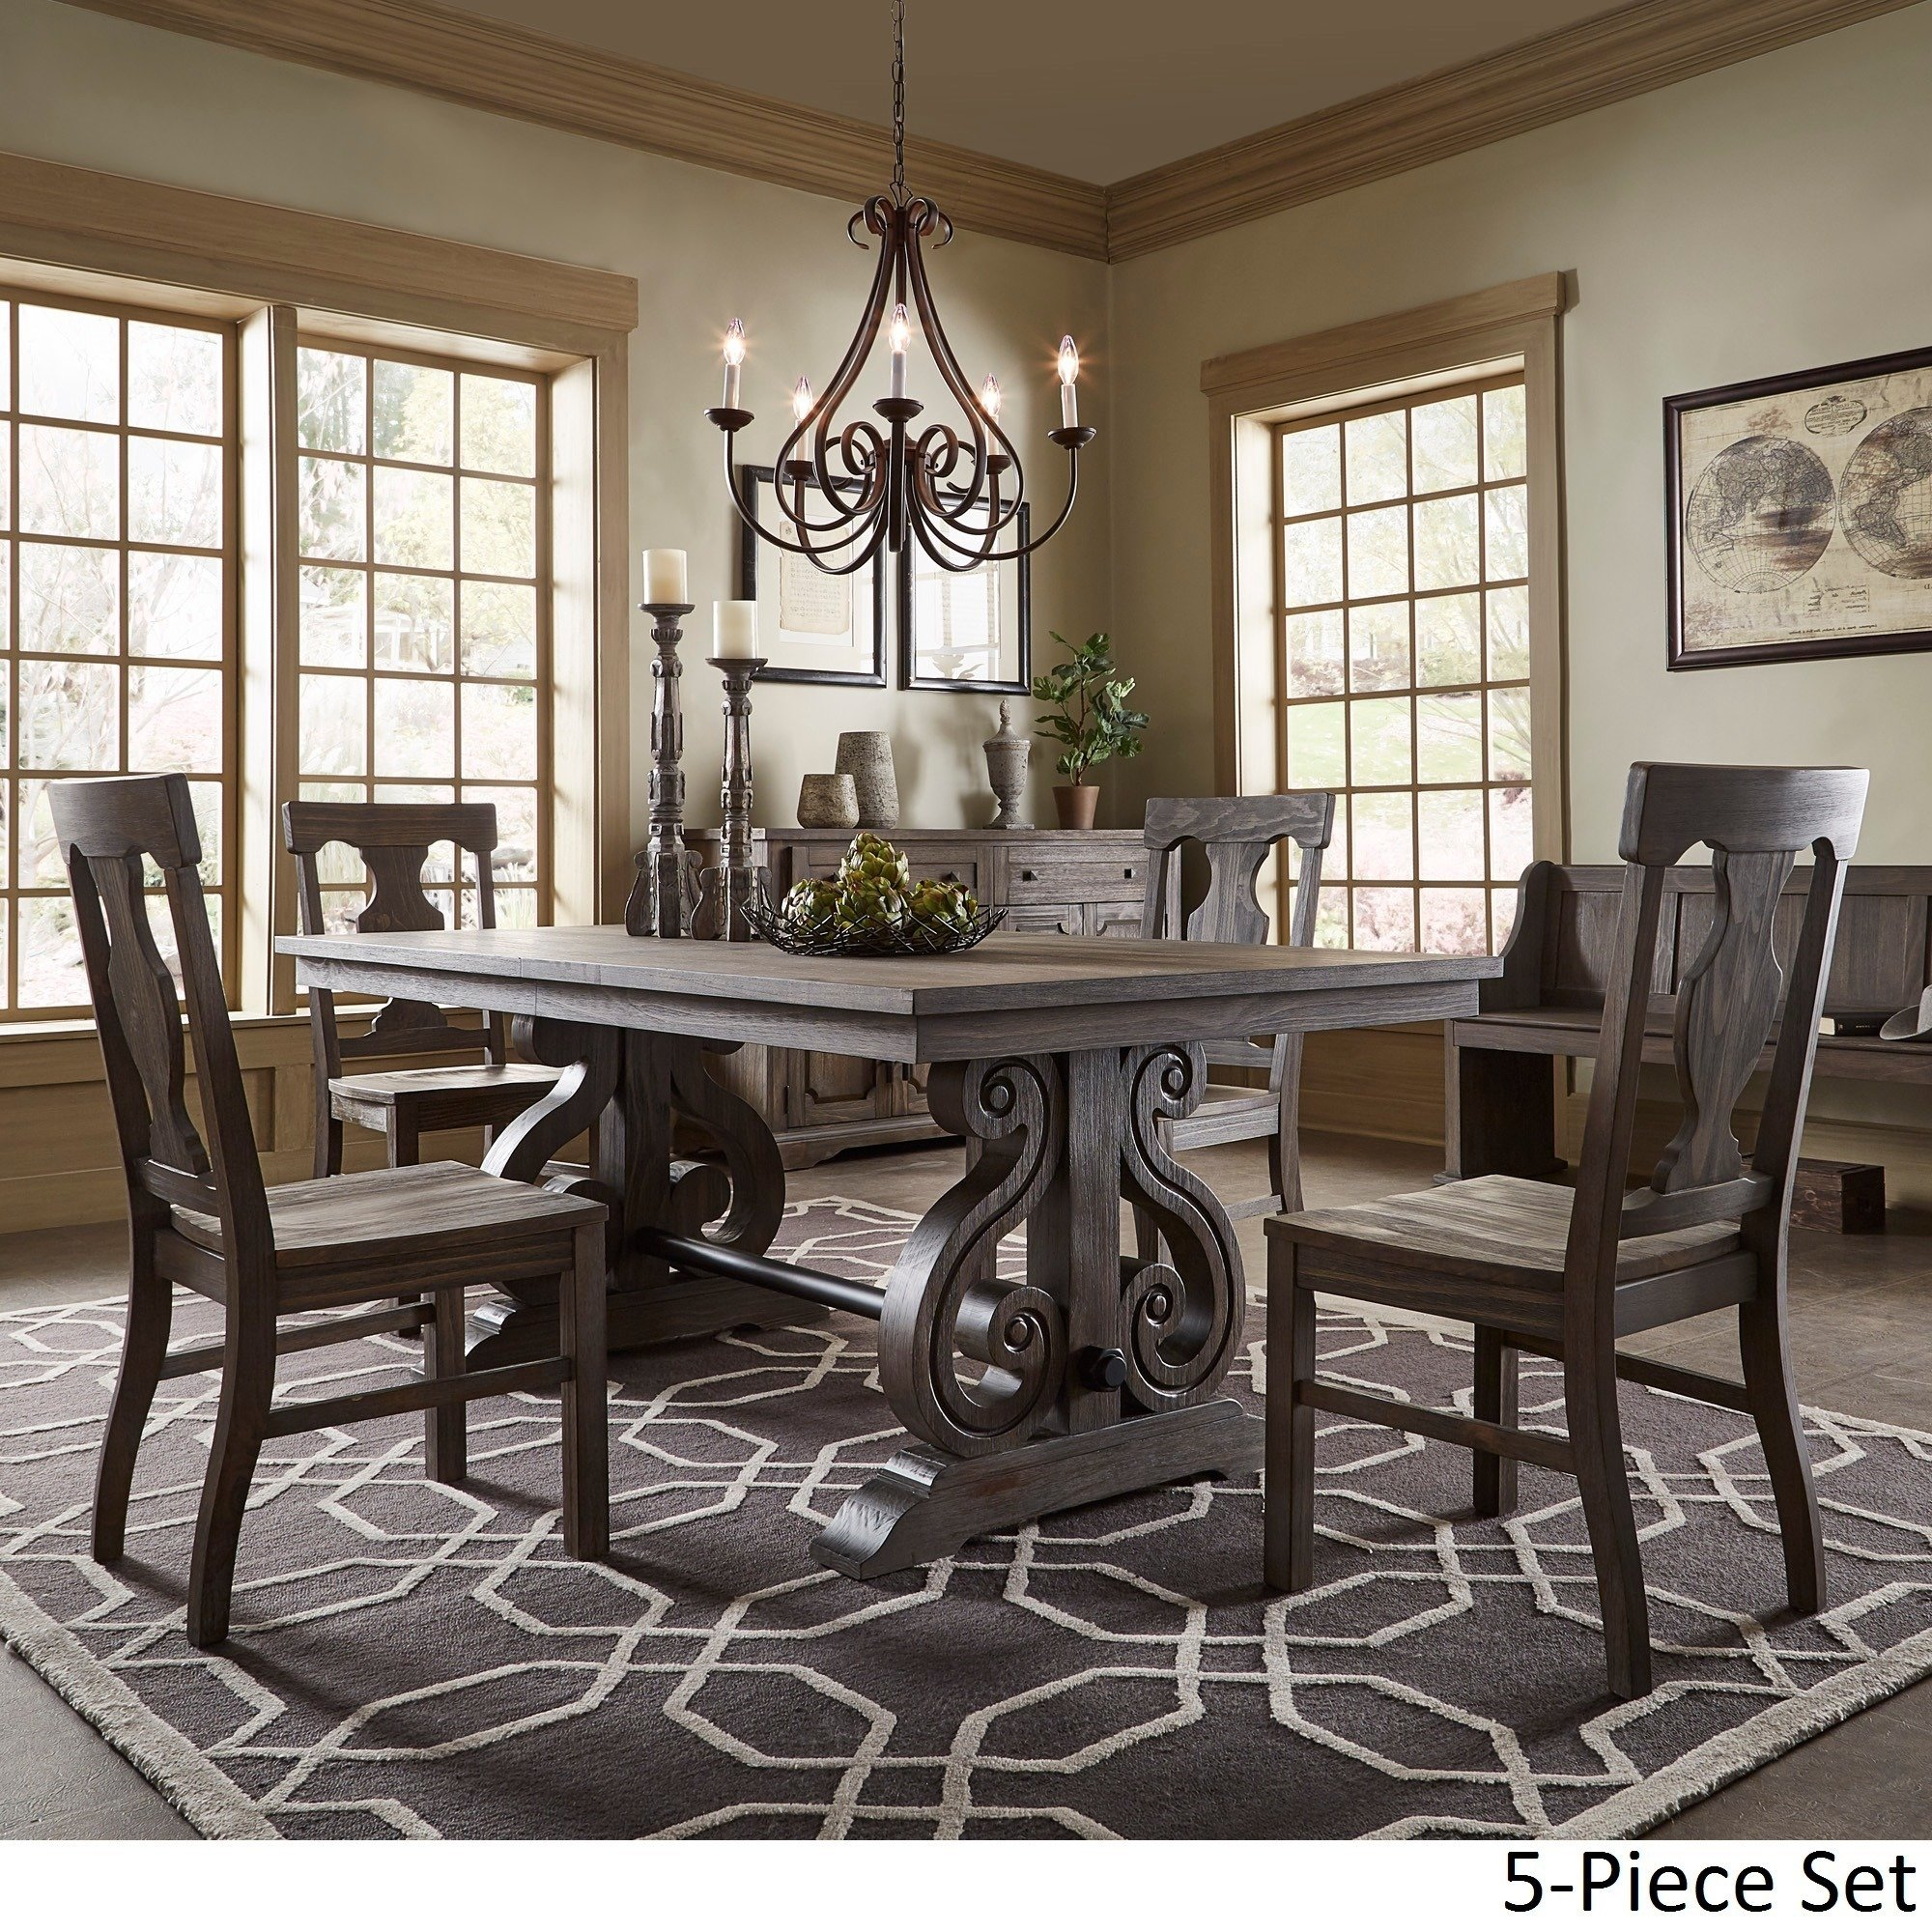 rowyn wood extendable dining table set inspire artisan accent pieces pallet patio furniture sets silver living room accessories end cedarwood target shoe storage square trunk